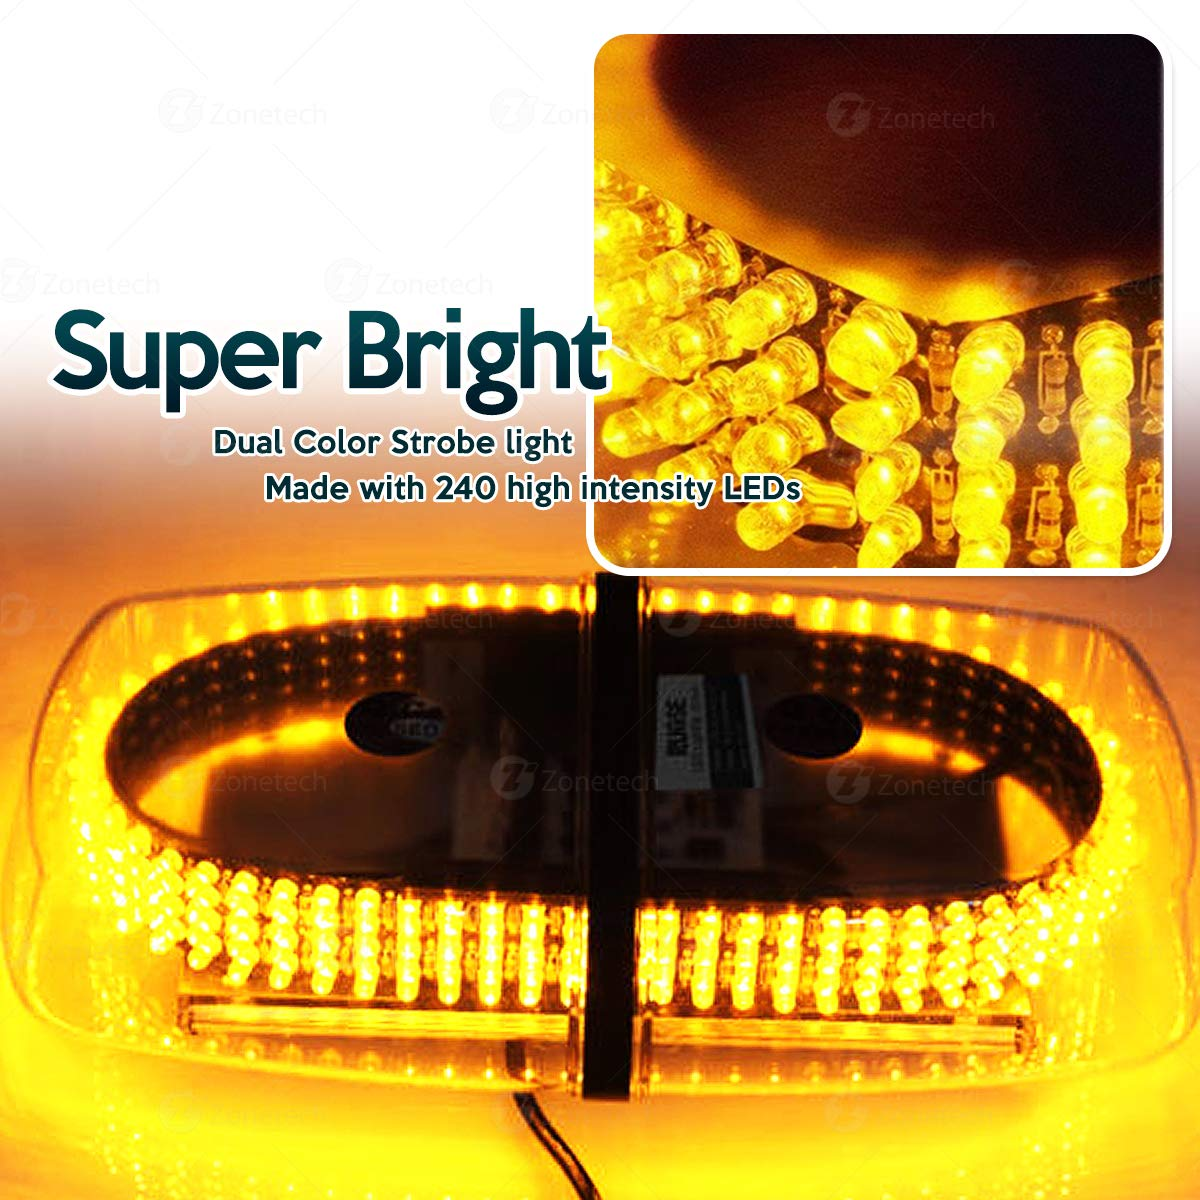 Premium Quality Heavy Duty Amber Emergency Hazard Warning LED Mini Bar Strobe Light w//Magnetic Base 4333283890 Zone Tech Emergency Warning LED Mini Bar Strobe Light